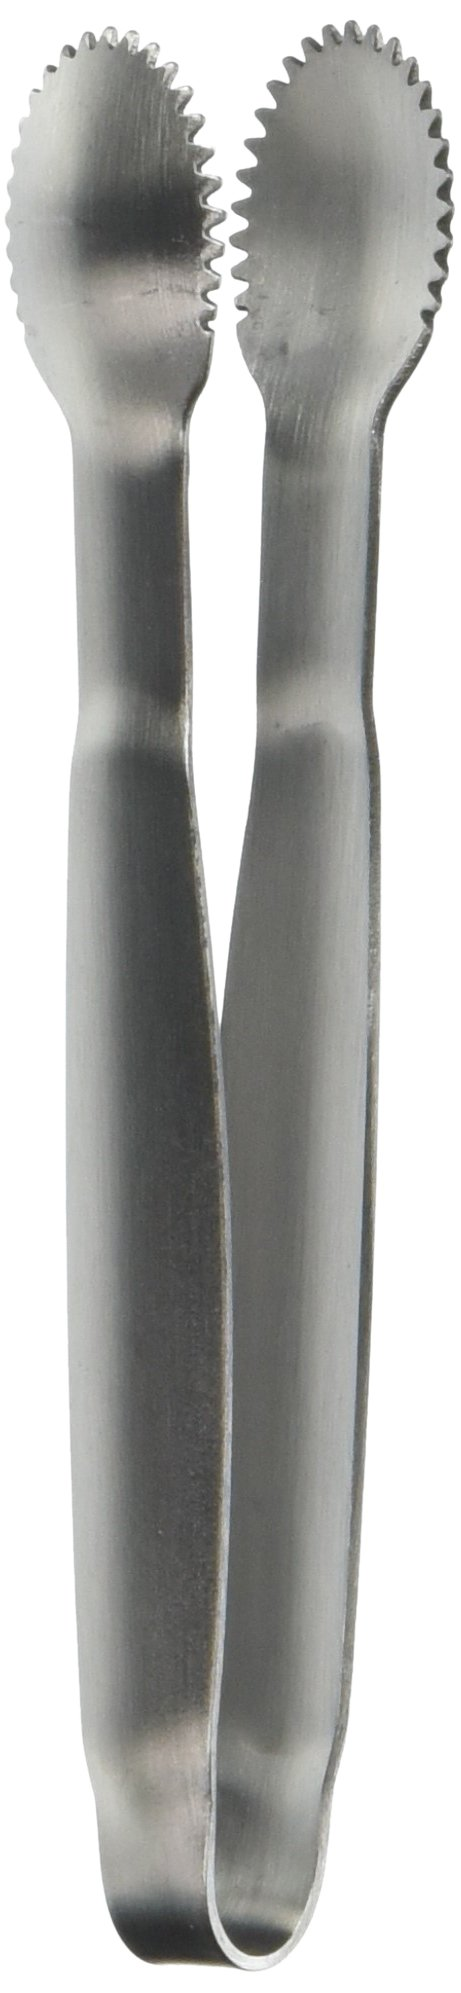 Amco Stainless Steel Mini Serve Tongs, Set of 2